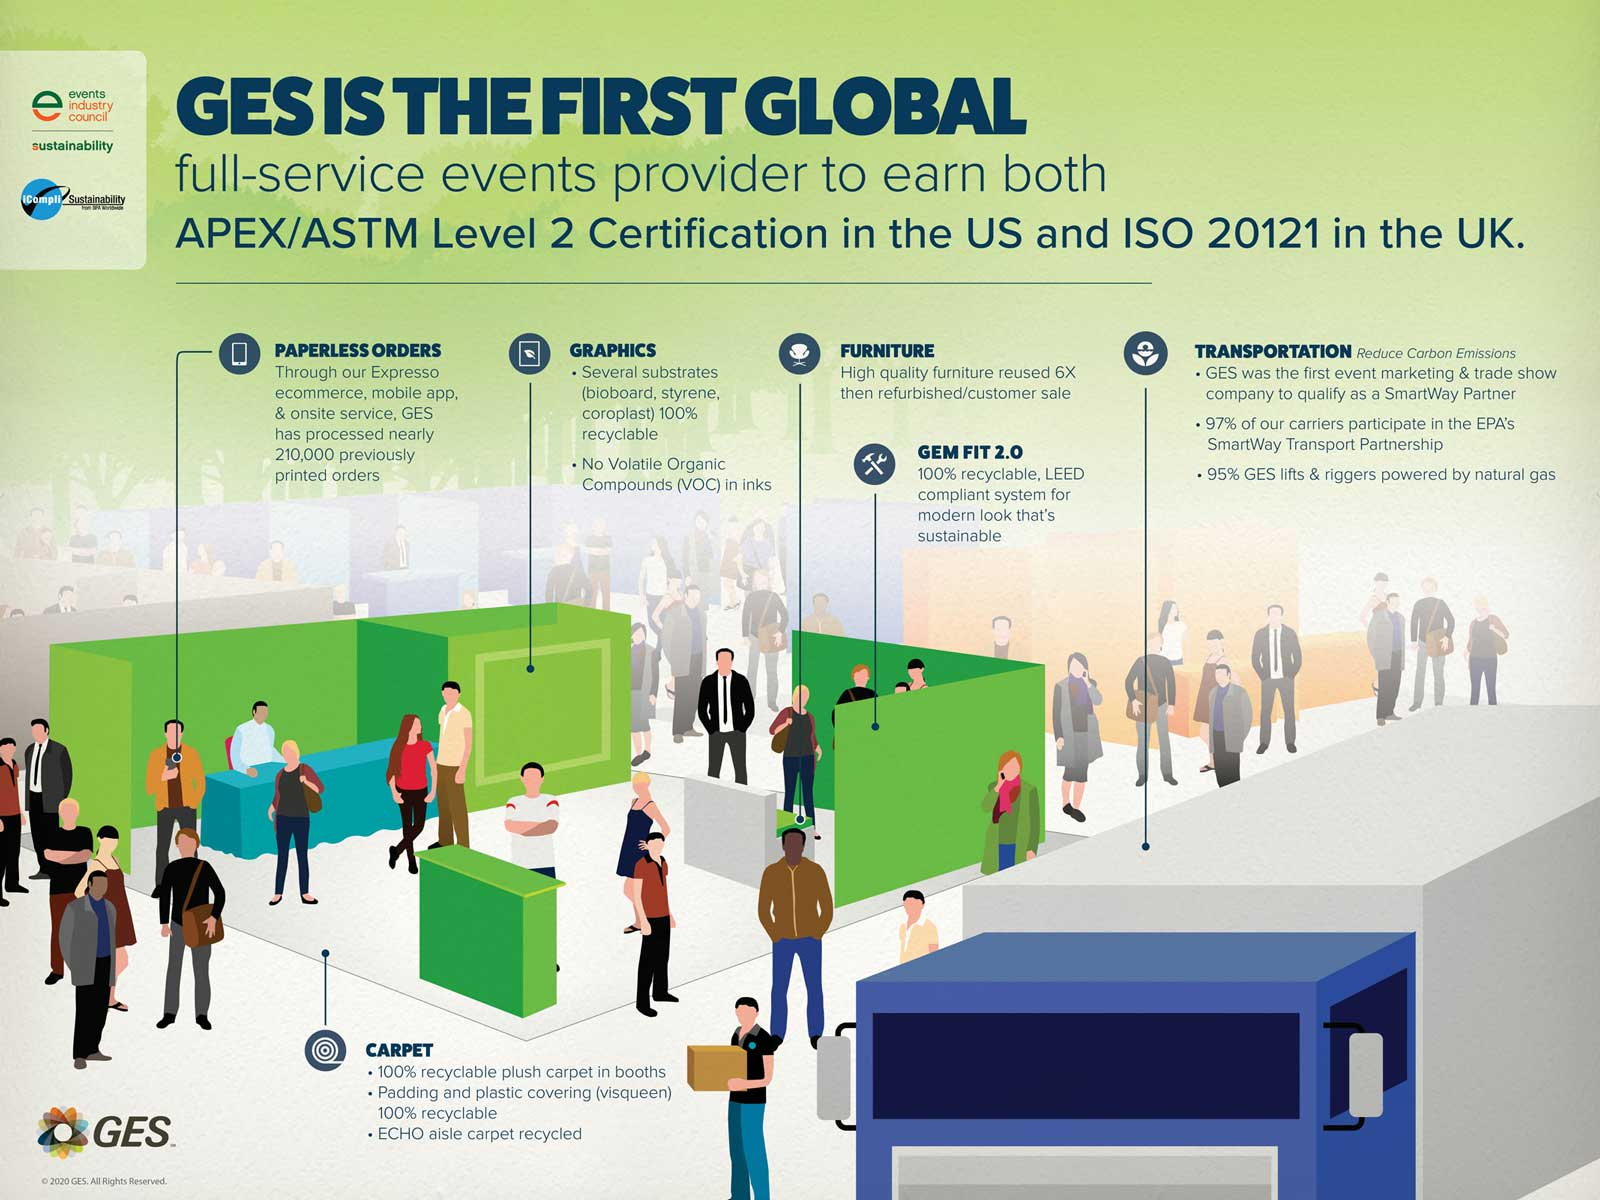 Sustainability APEX ASTM Level 2 Certification in the US and ISO 20121 in the UK